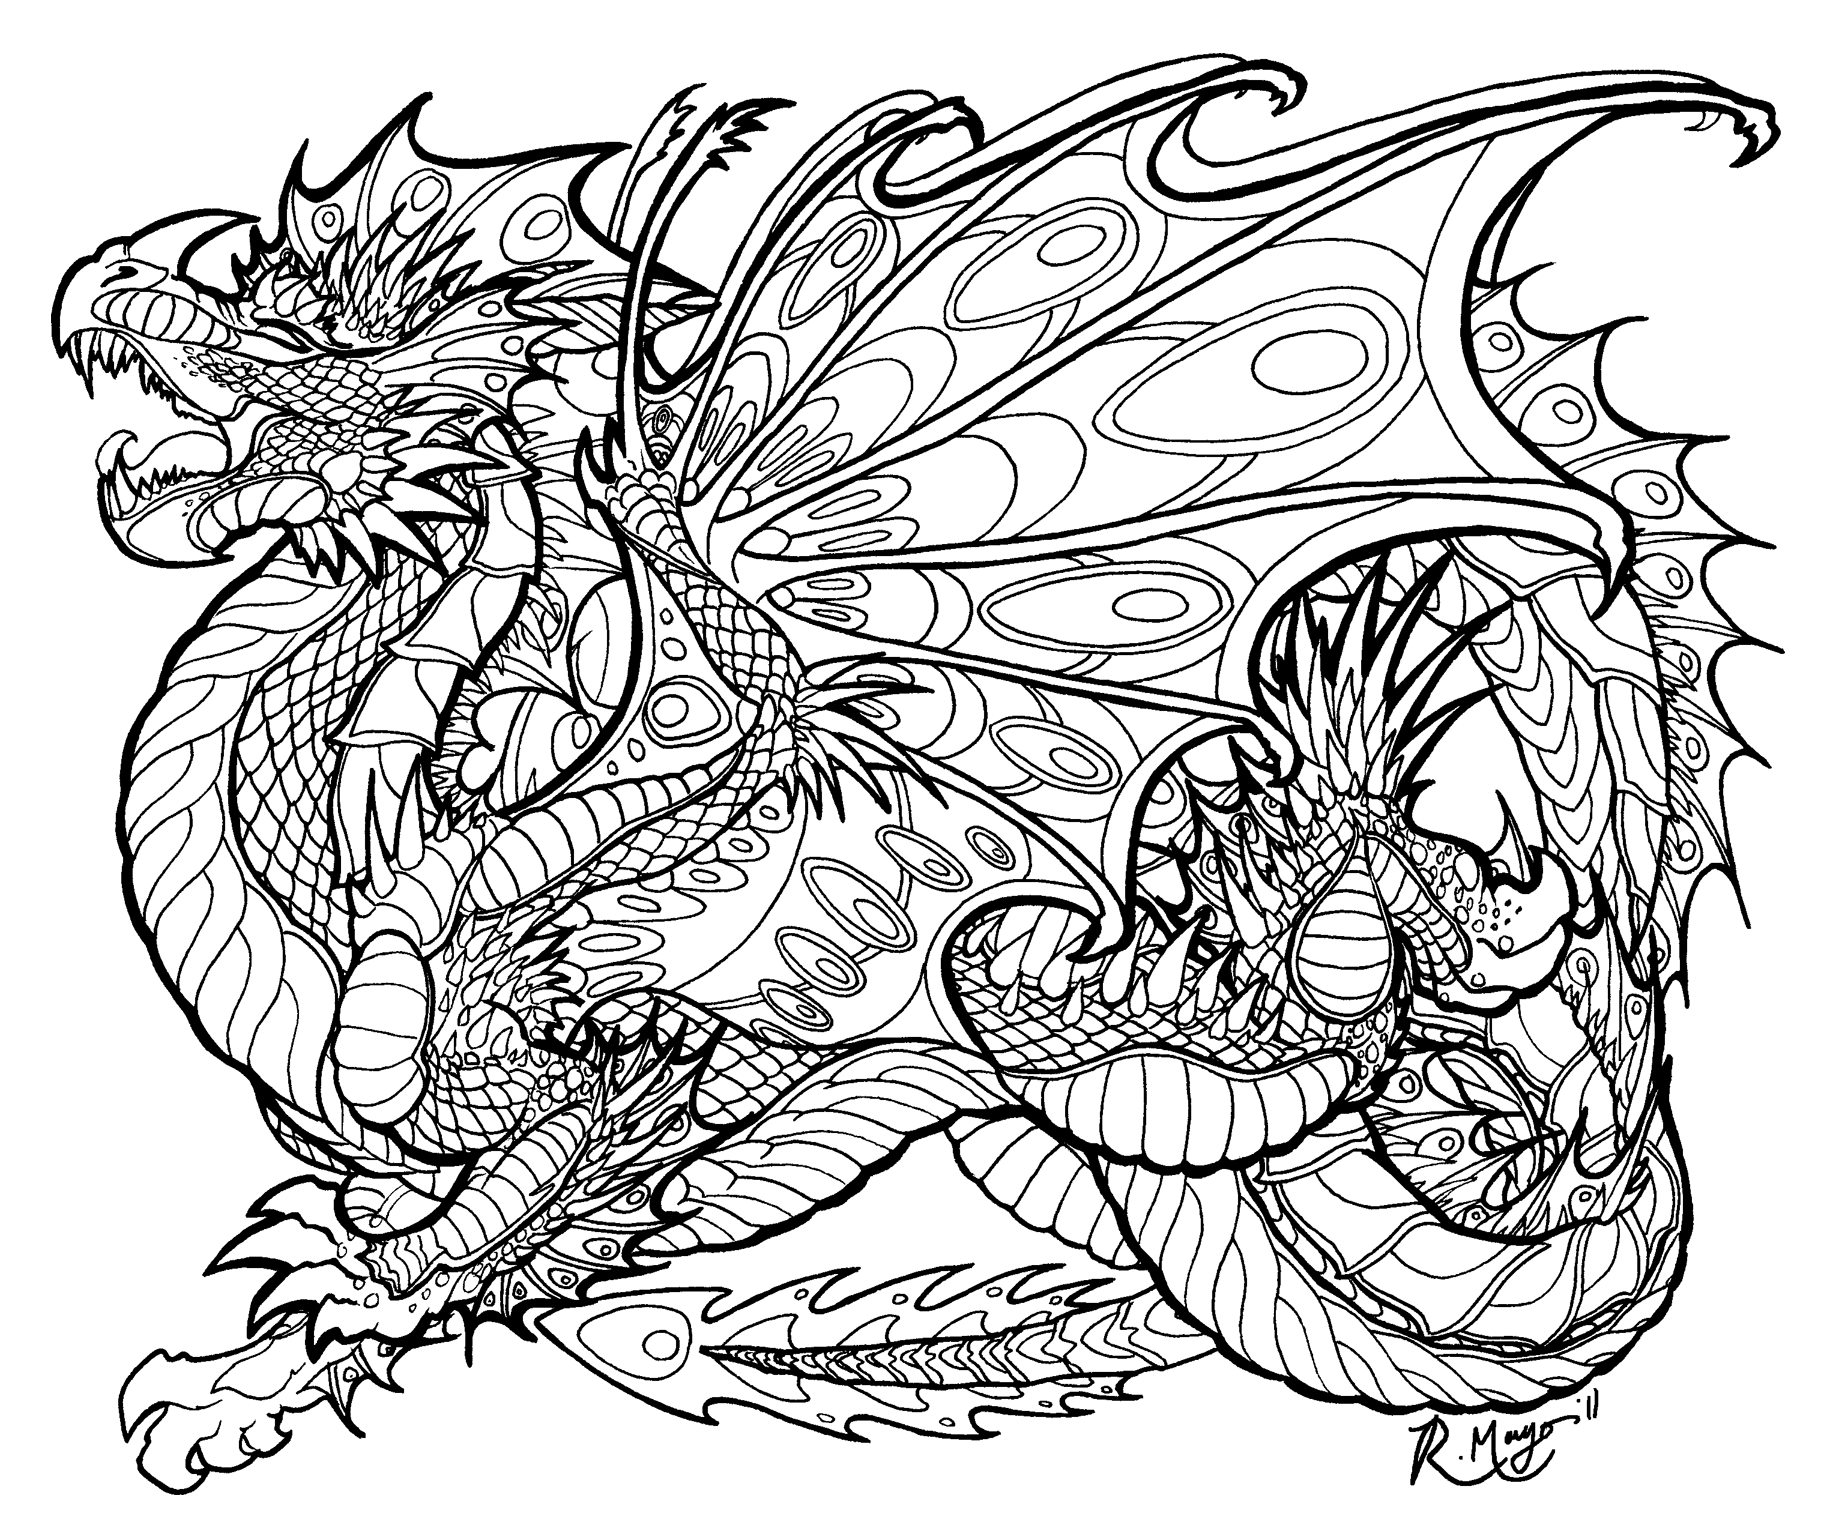 dragon colouring pictures dragon coloring pages to download and print for free colouring pictures dragon